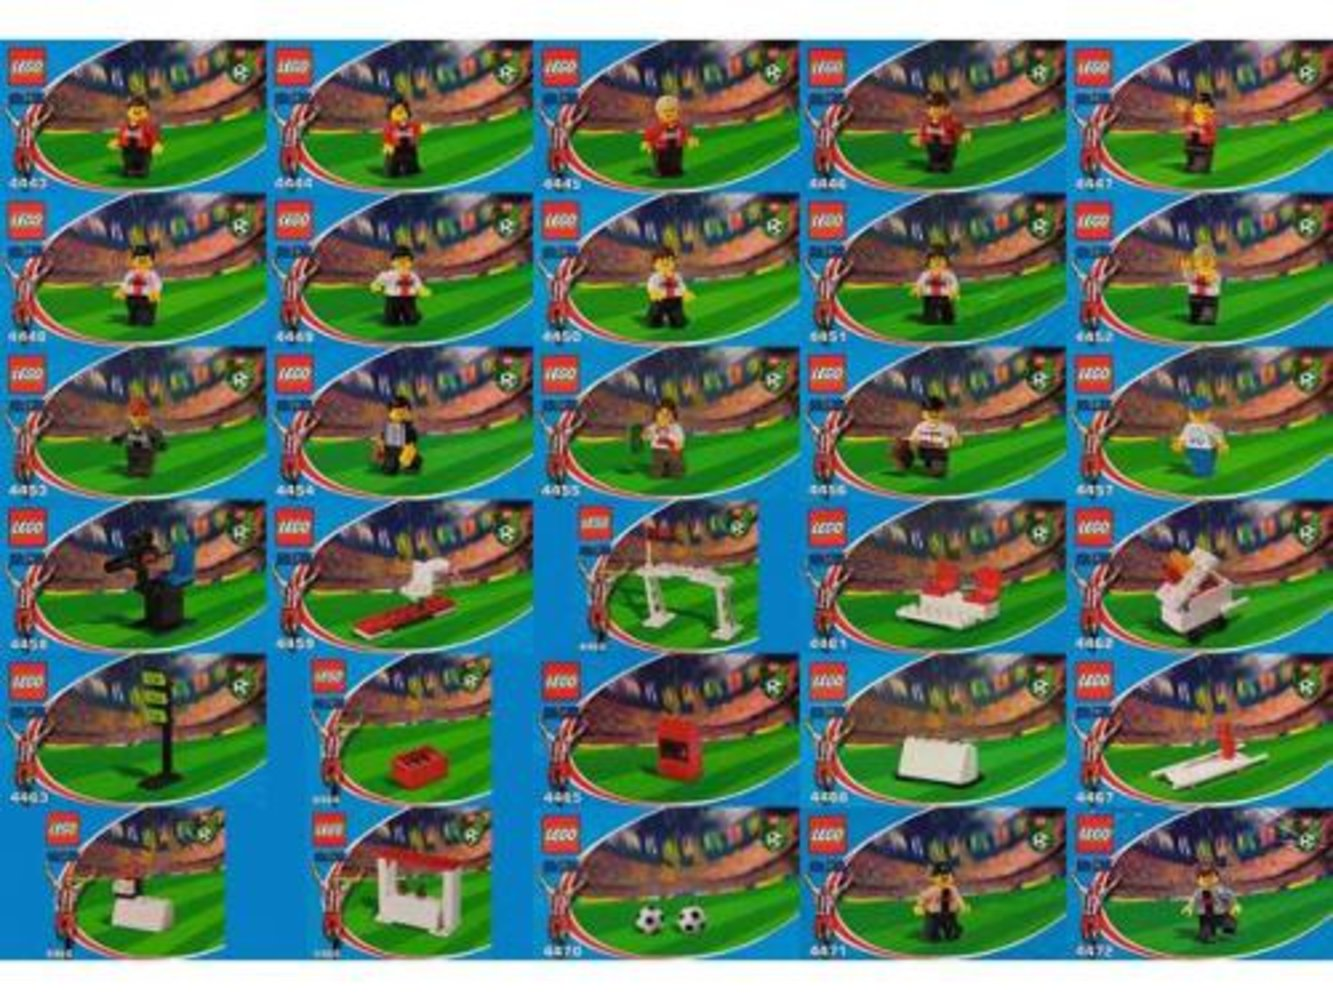 Japanese Coca-Cola Soccer collection sets 4443 thru 4472